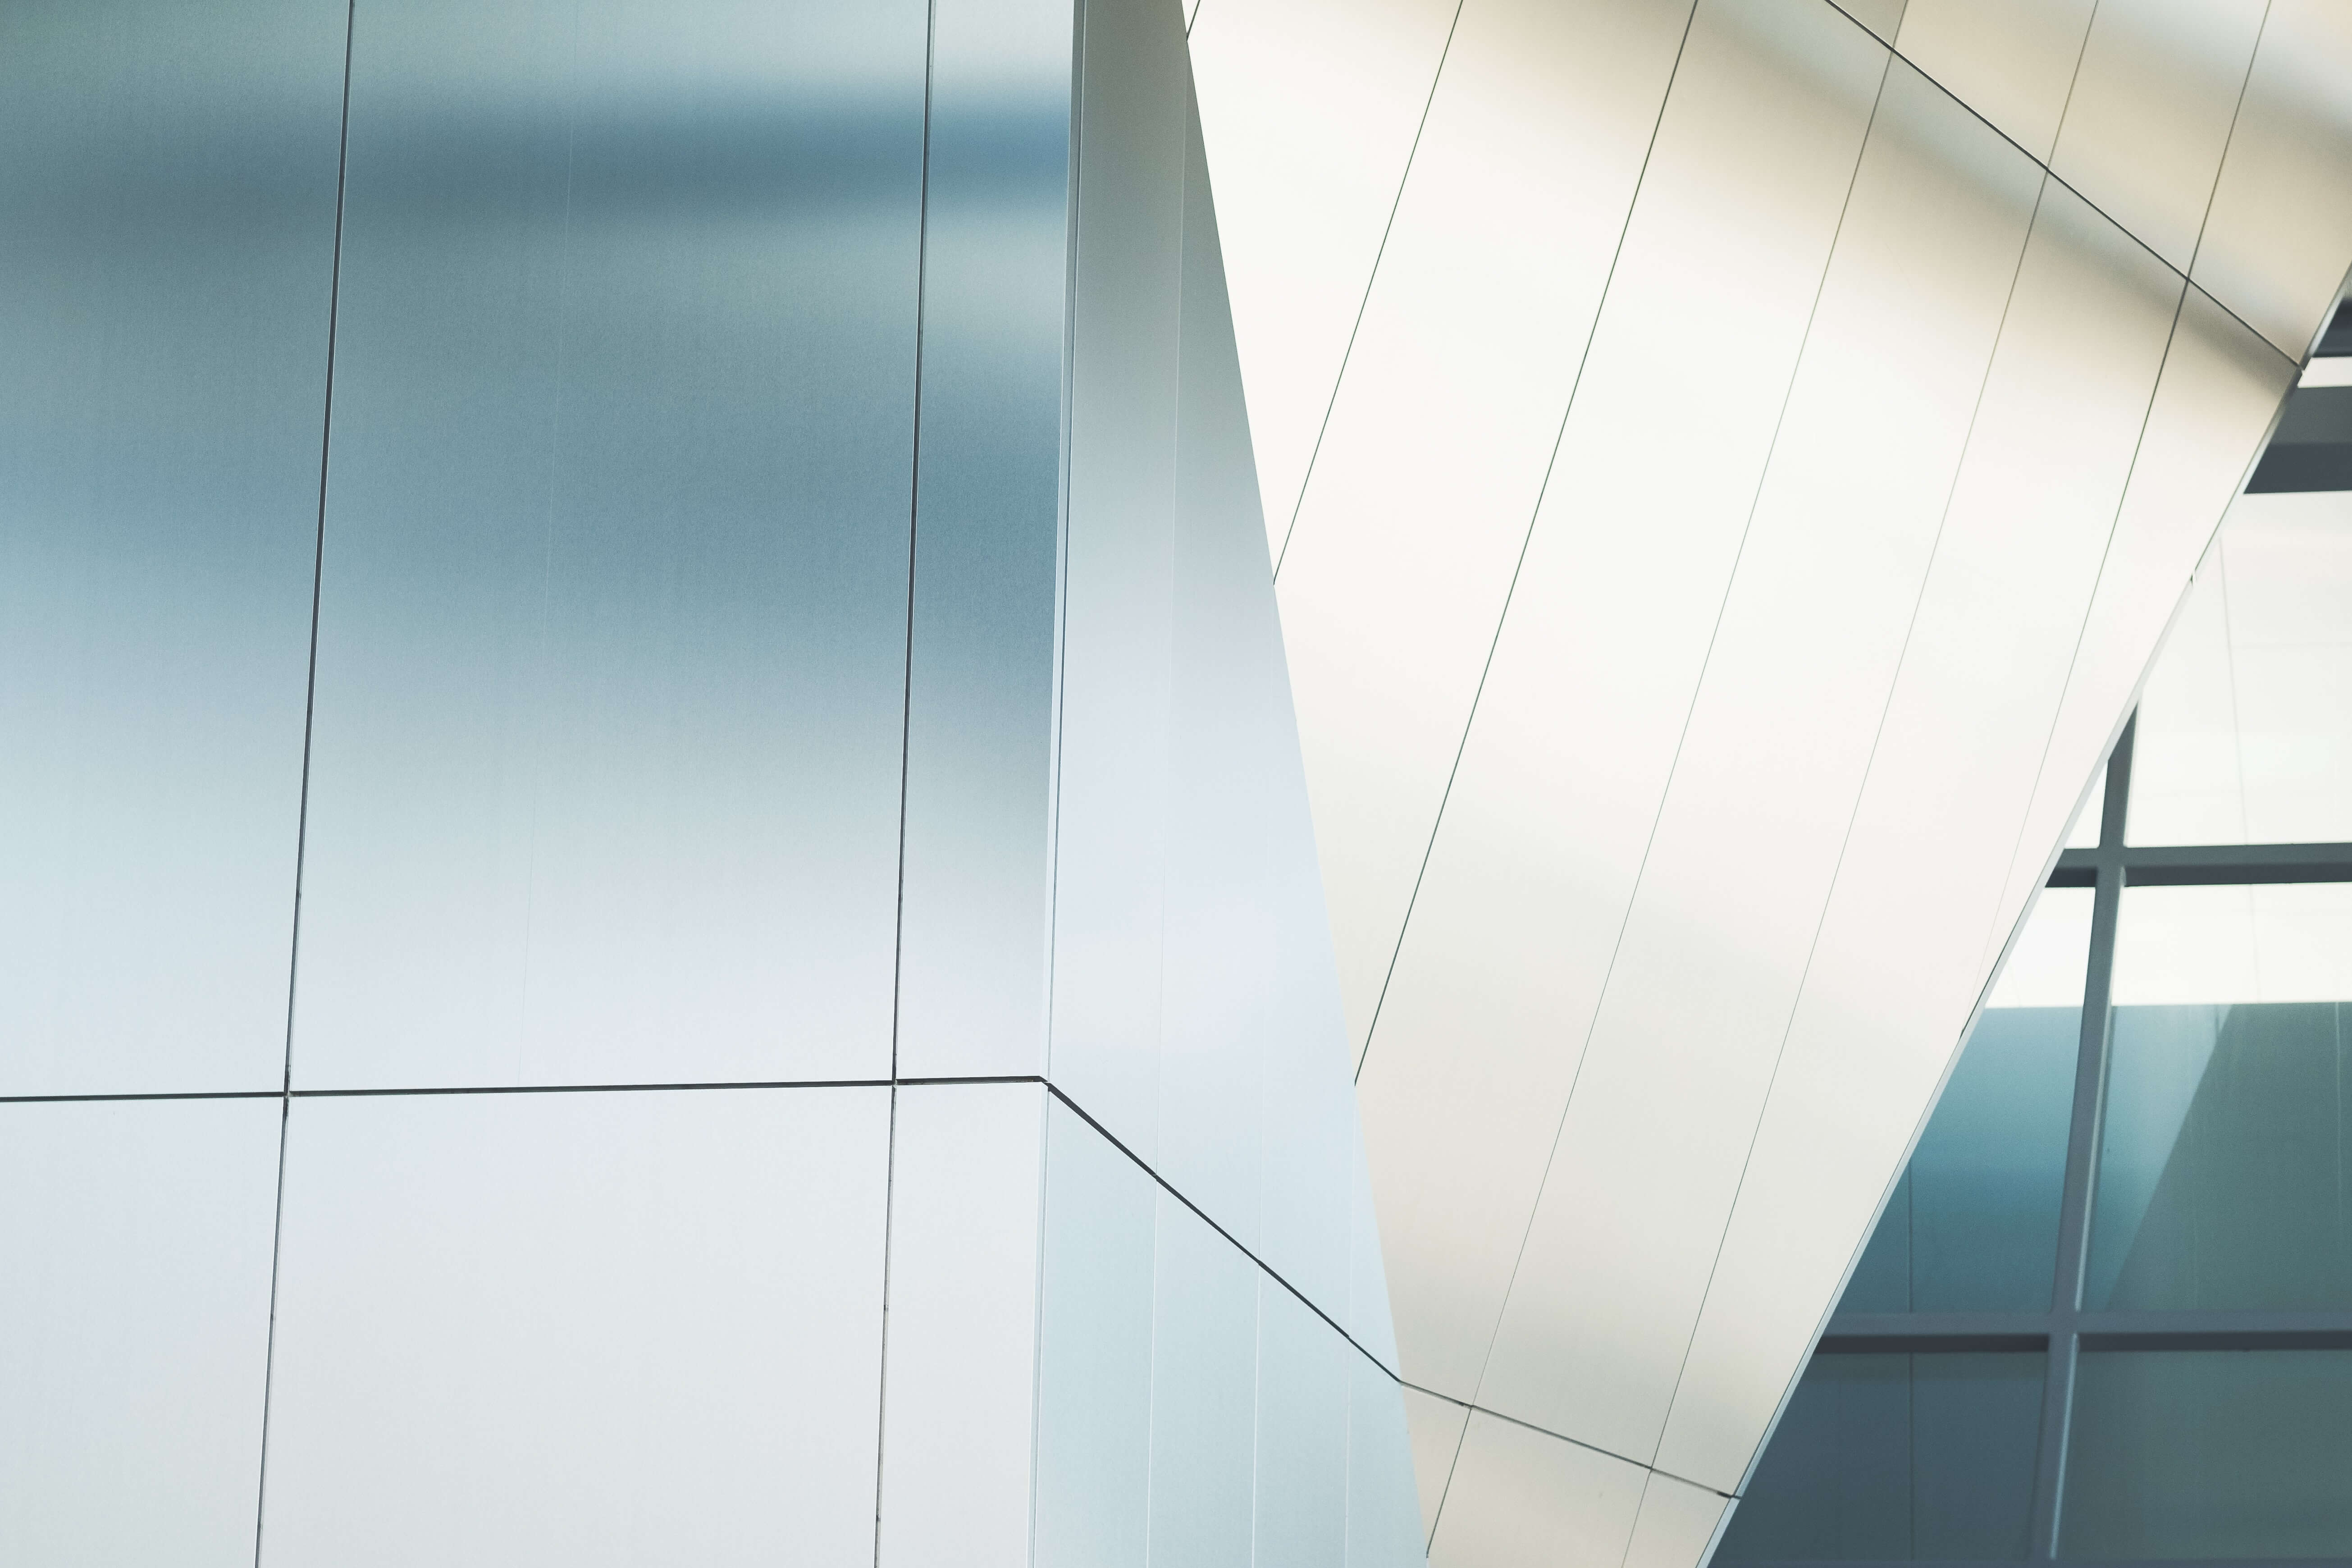 web-design-agency-photography-architecture-space66